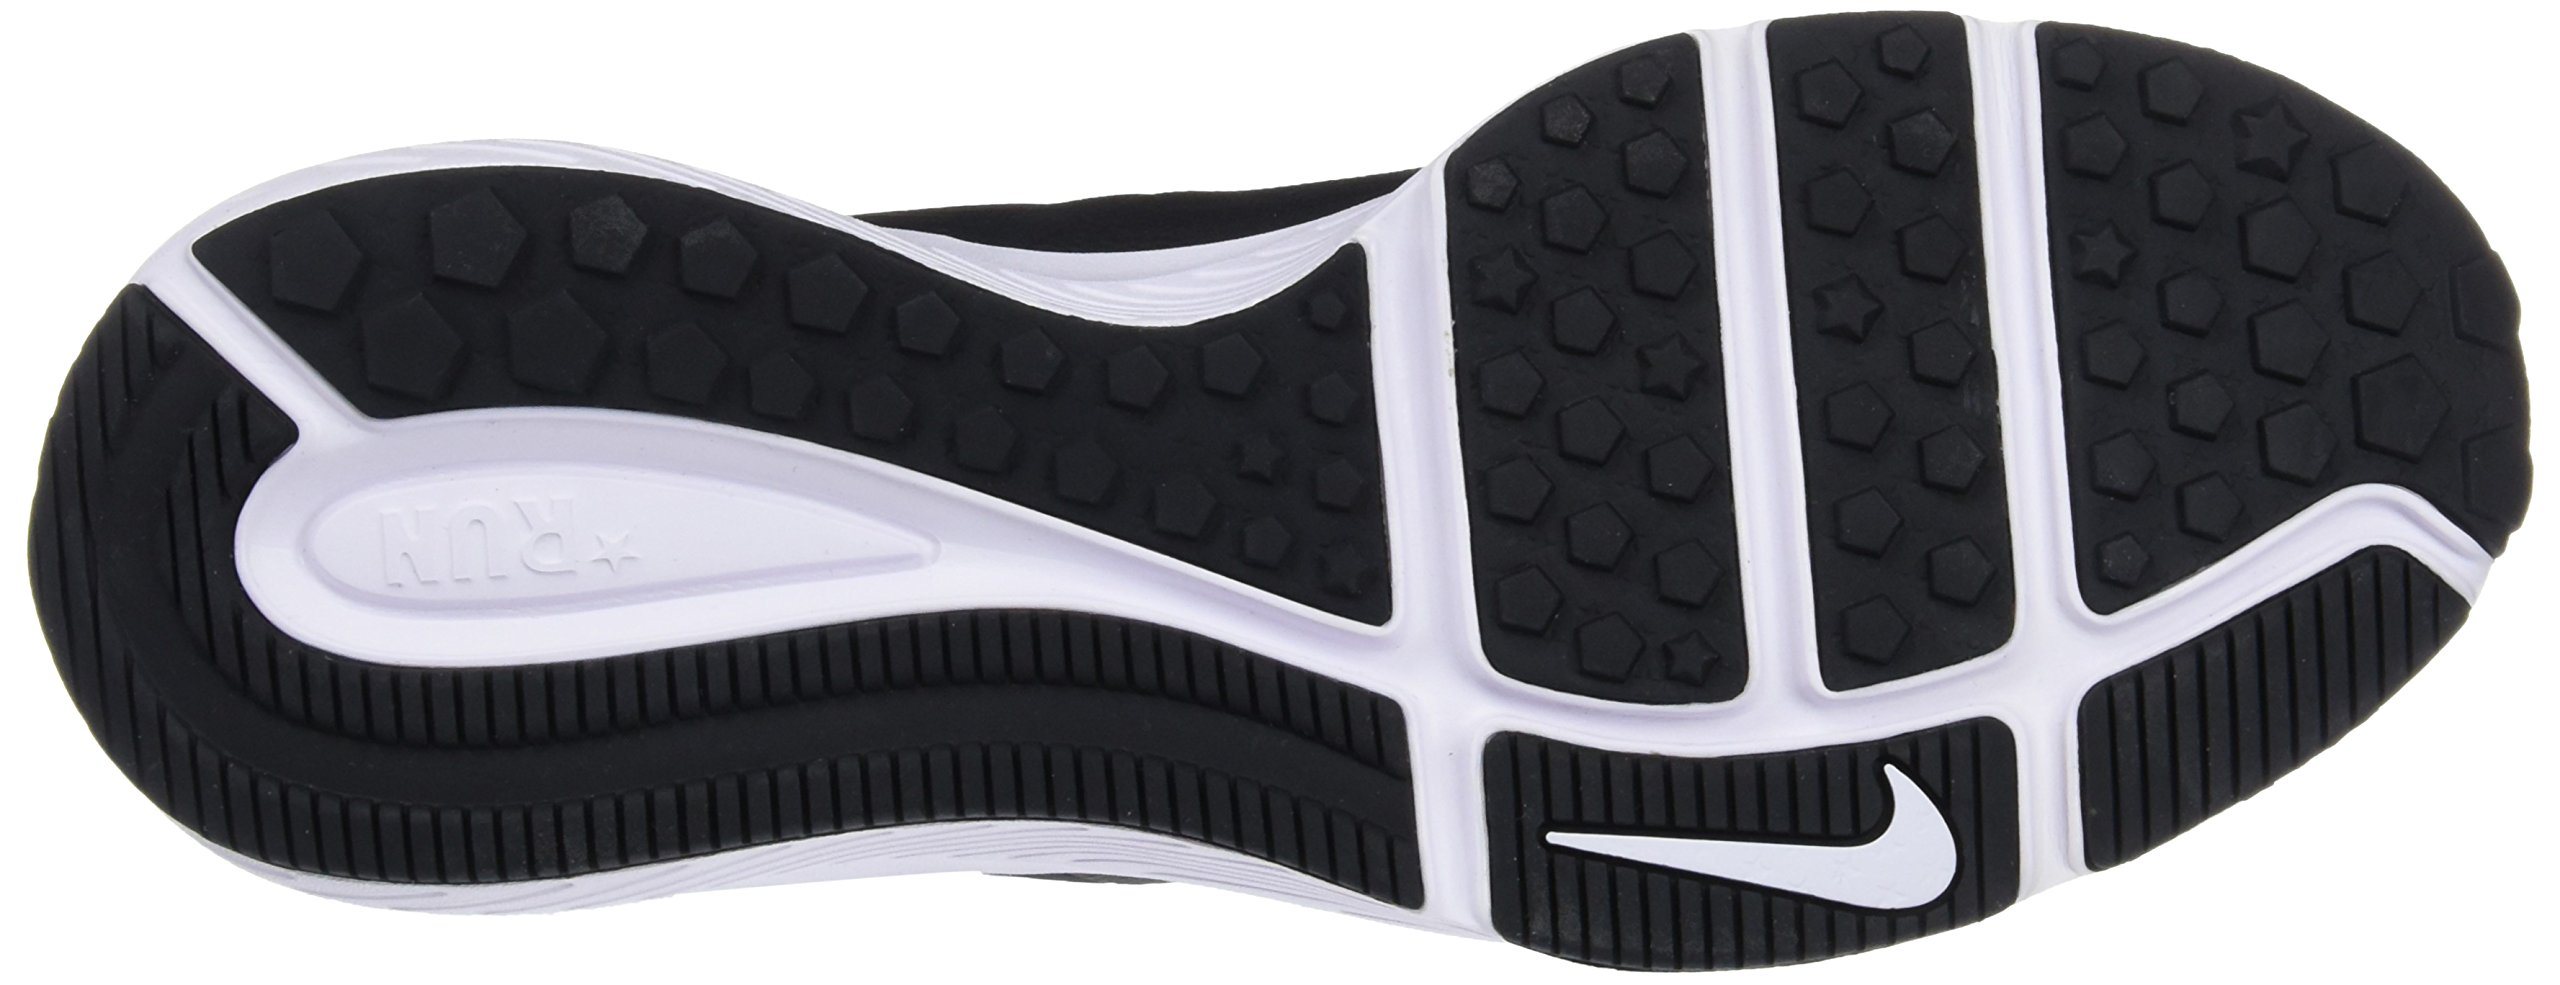 Nike Kids' Grade School Star Runner Running Shoes (3.5, Black/White) by Nike (Image #3)